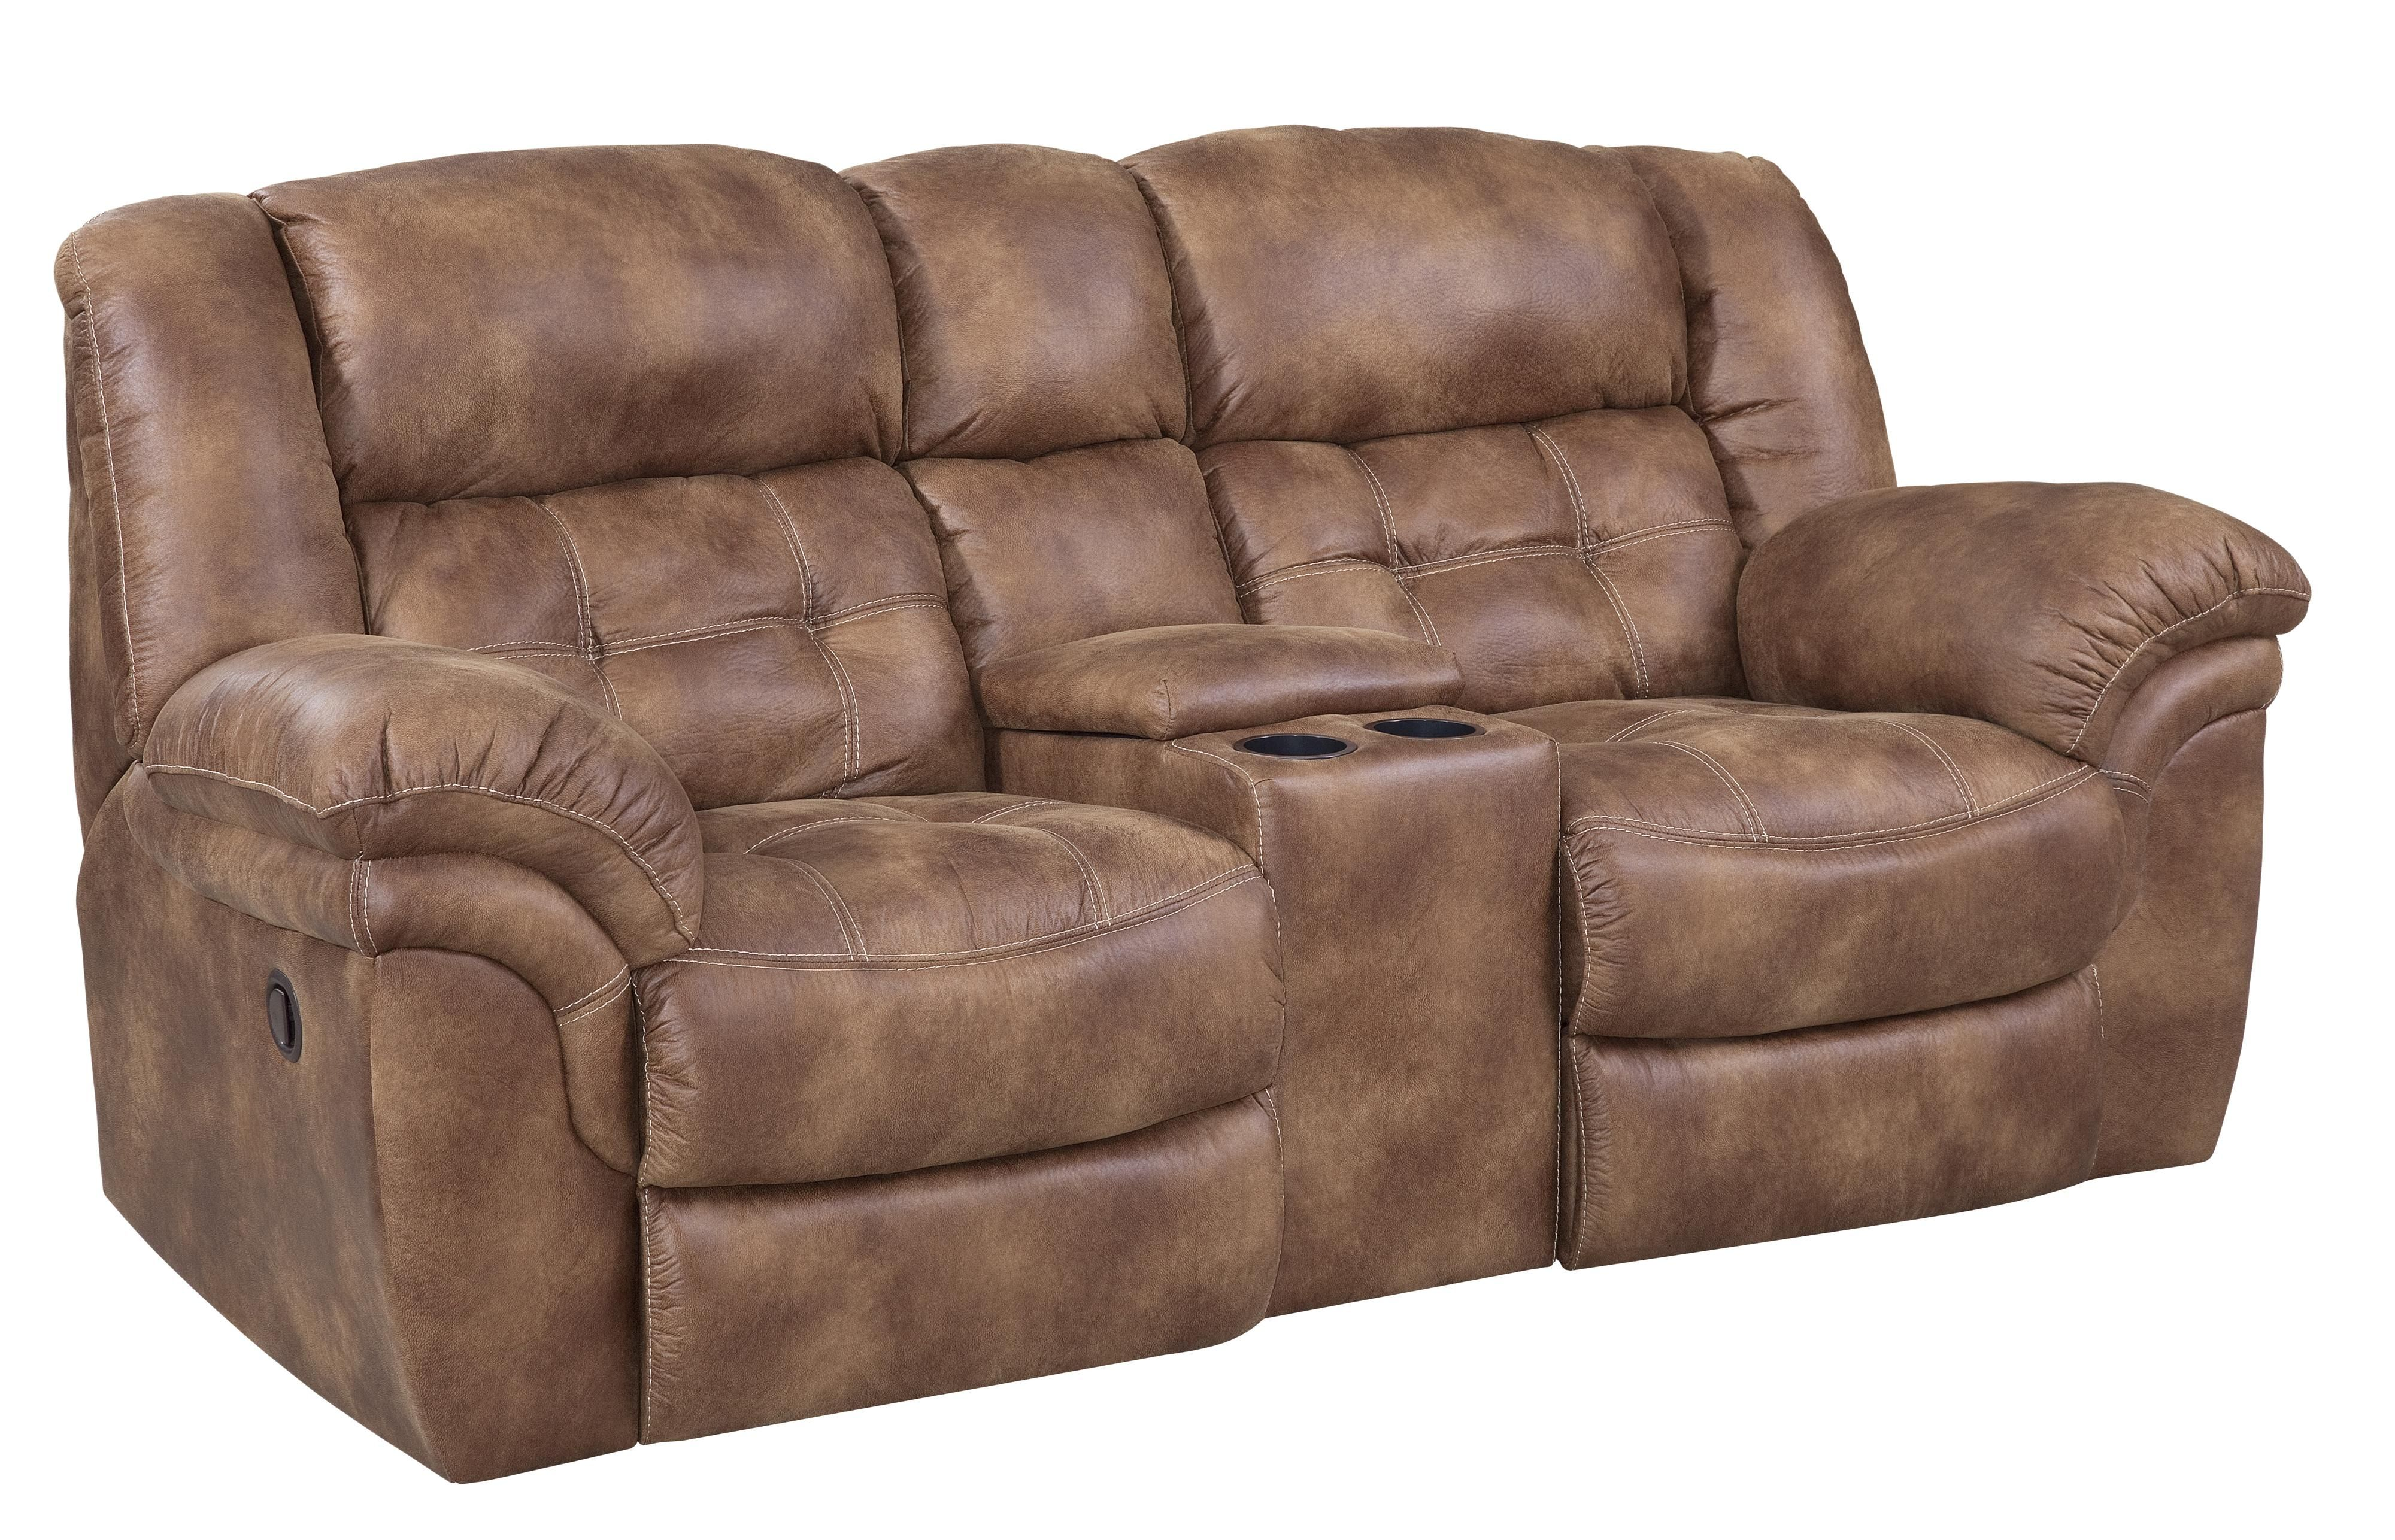 129 Reclining Console Loveseat By Homestretch Leather Reclining